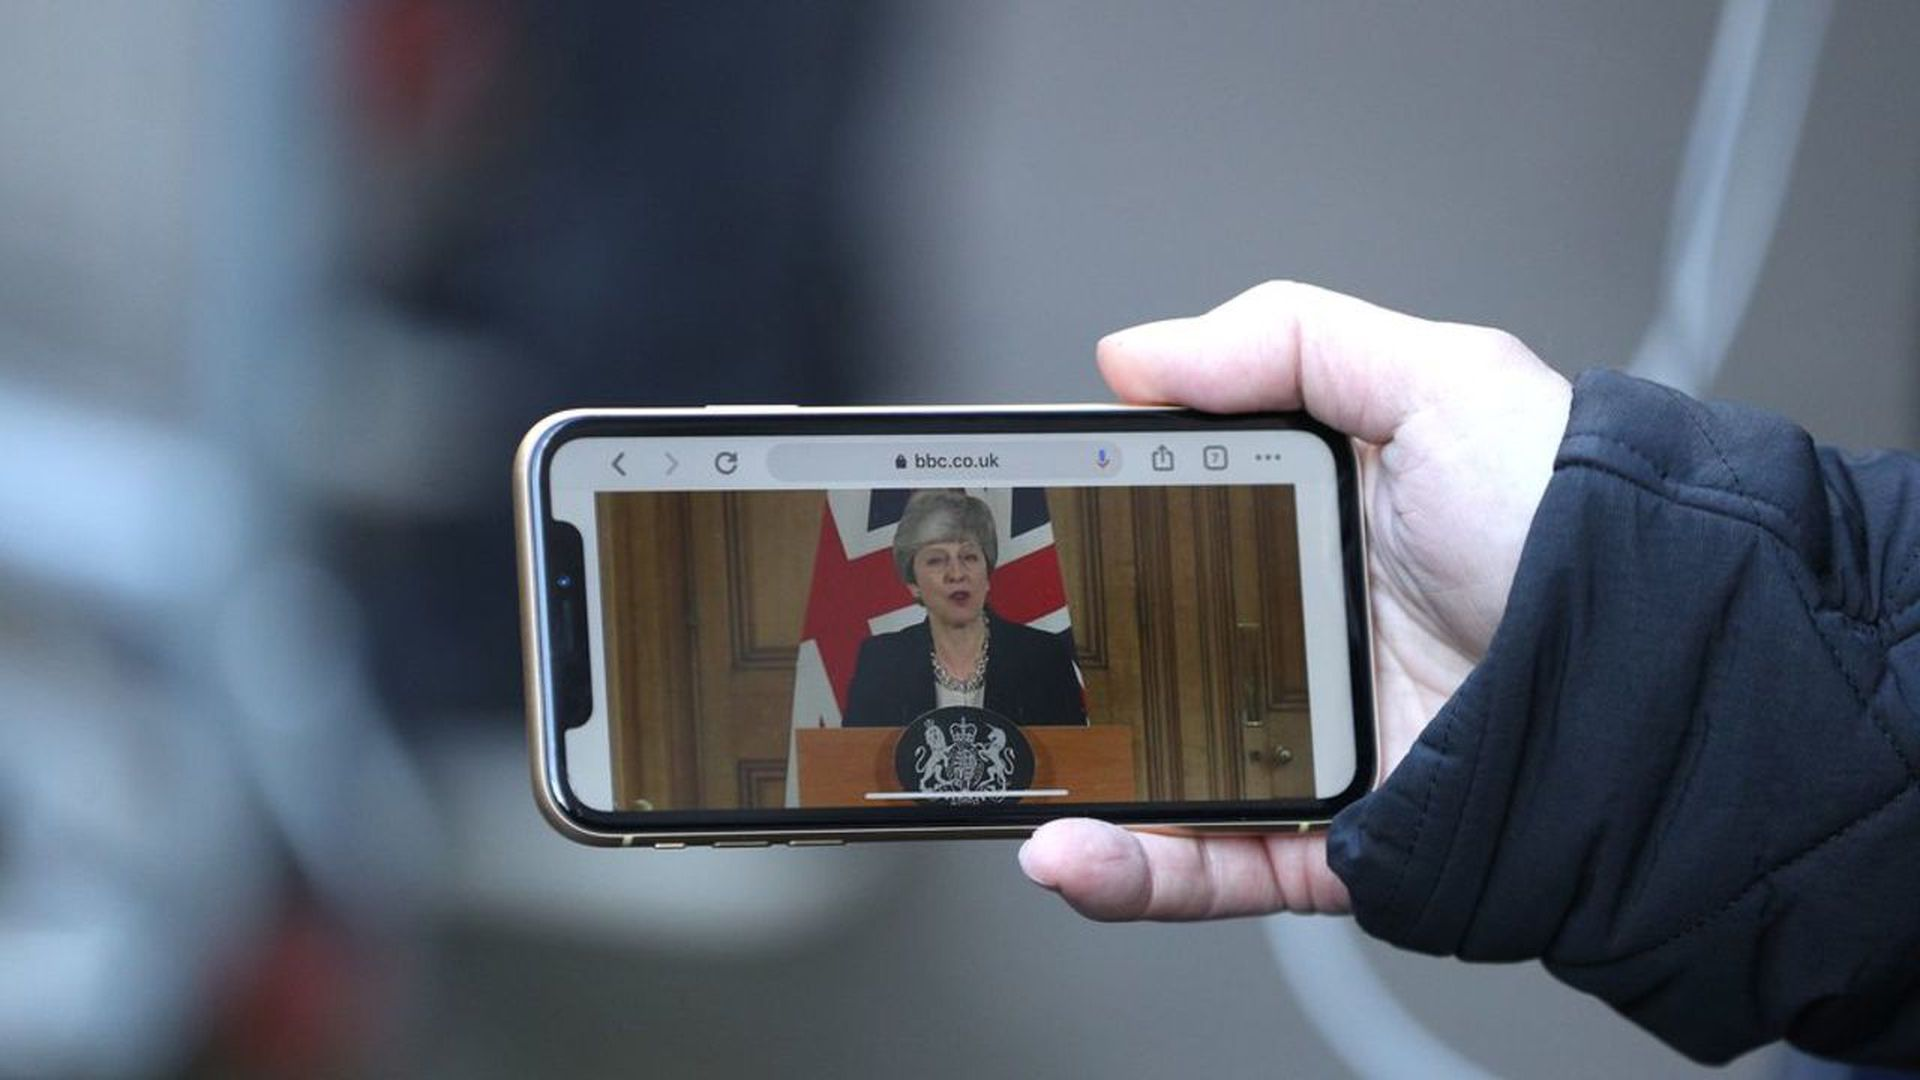 Theresa May speaking at a press conference. Someone streams it on their phone